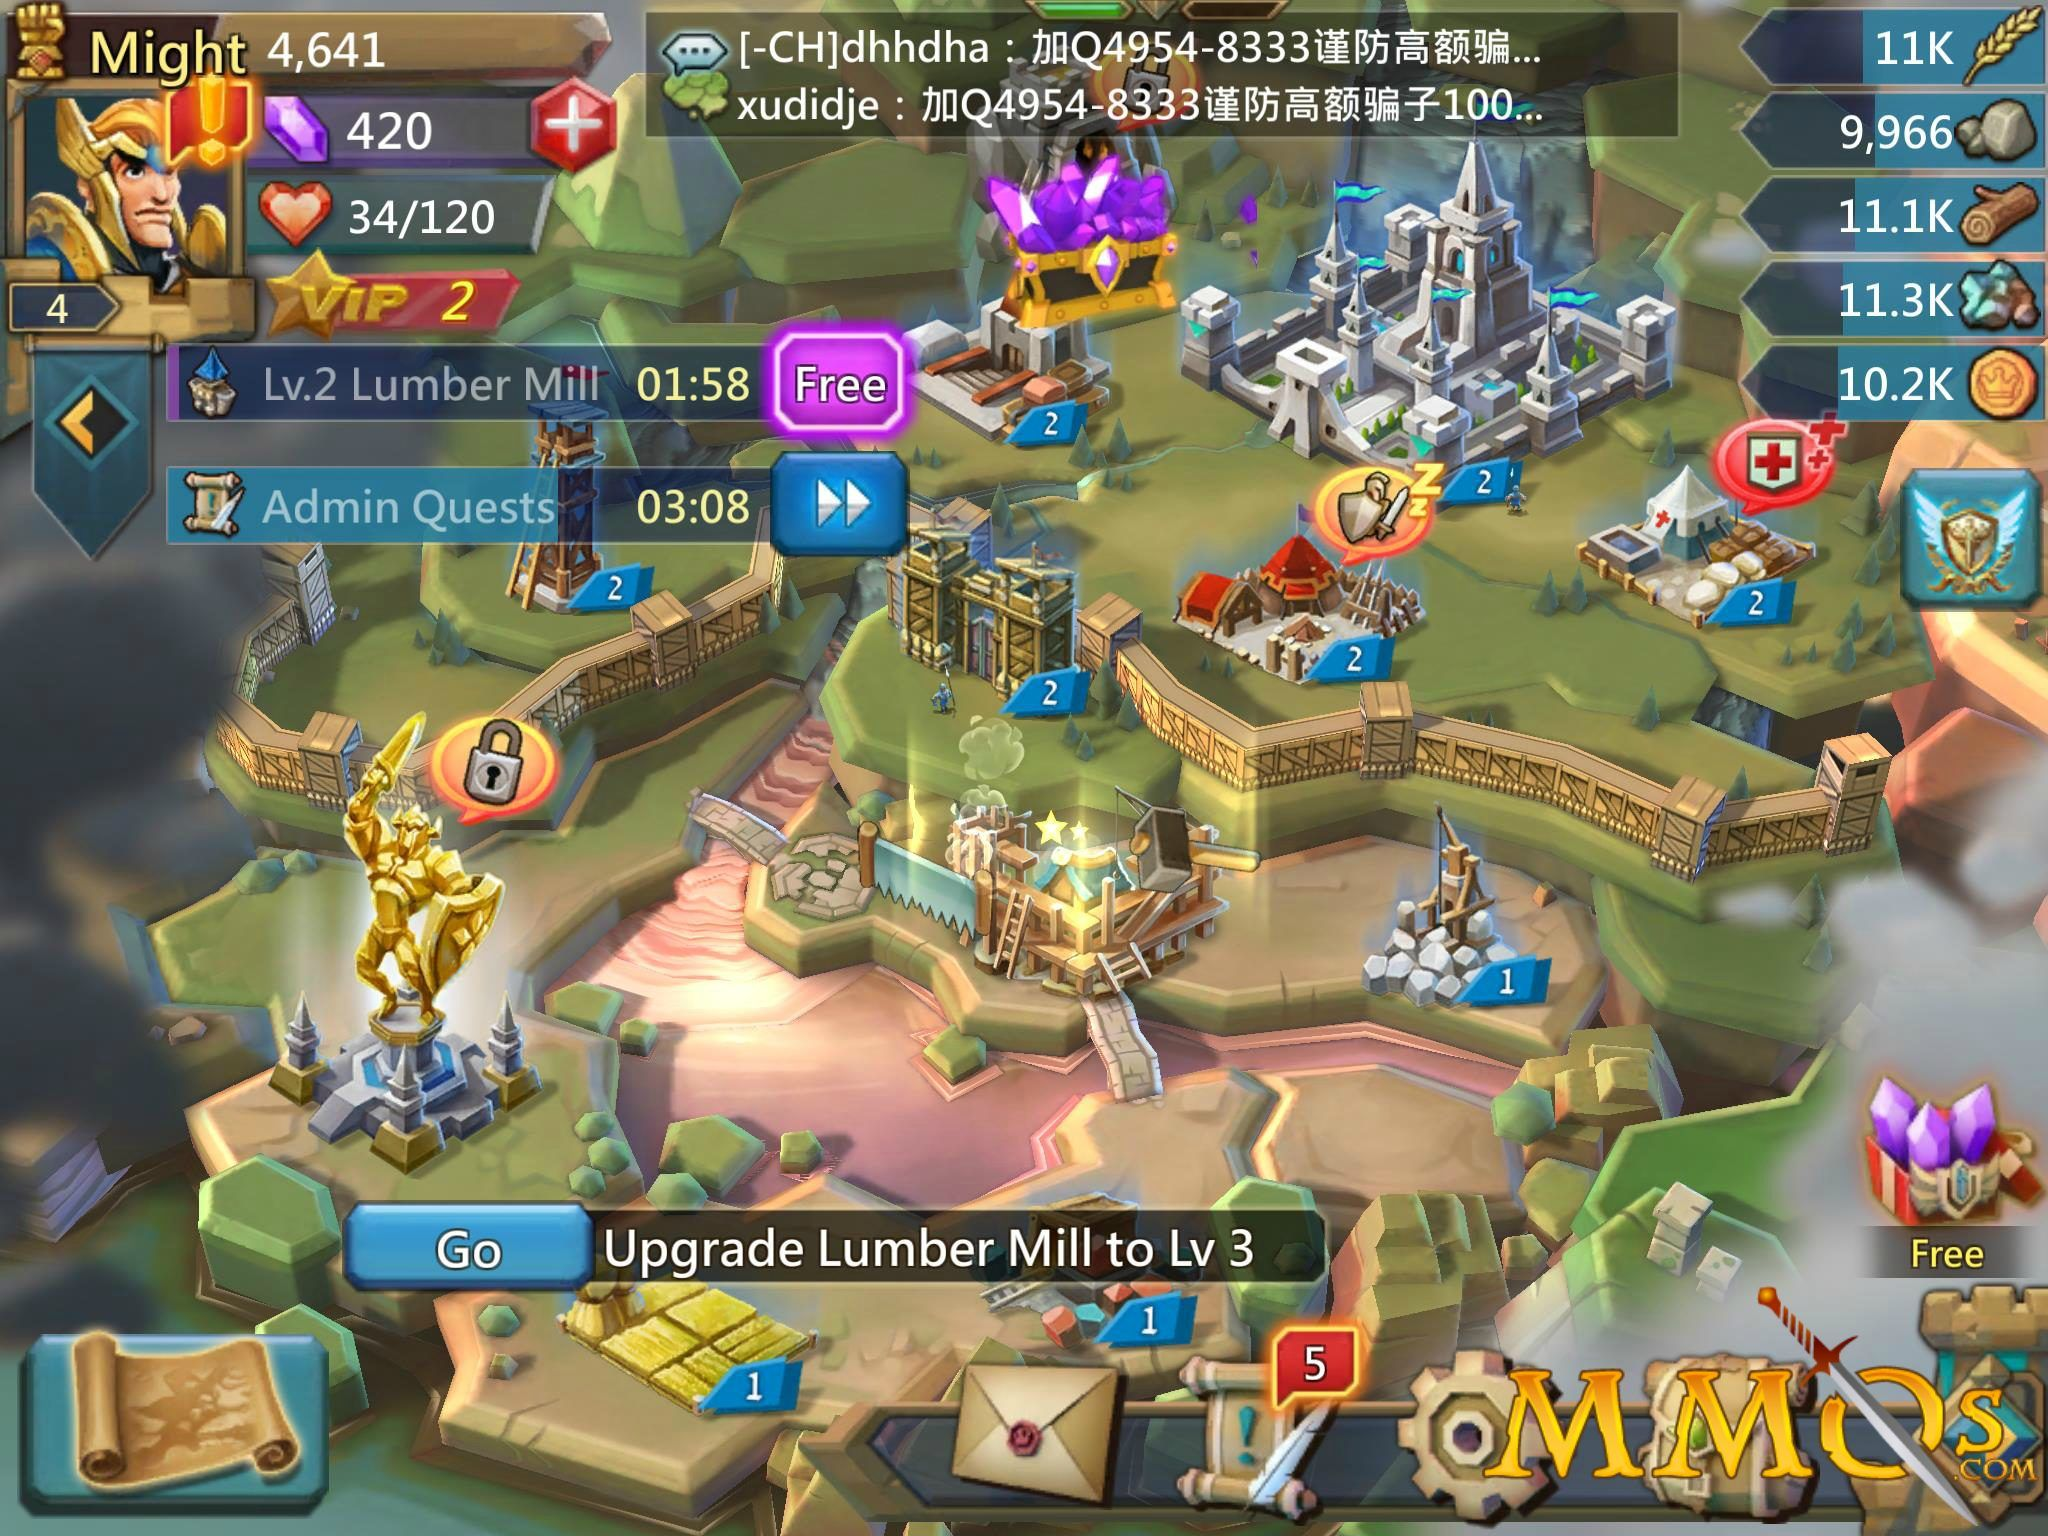 Lords Mobile Gems Mod Apk Download Hack Lords Mobile Lords Mobile Free Gems Hack Lords Mobile Resources Generator Gems Lords In 2020 Lords Mobile Game Cheats Cheating